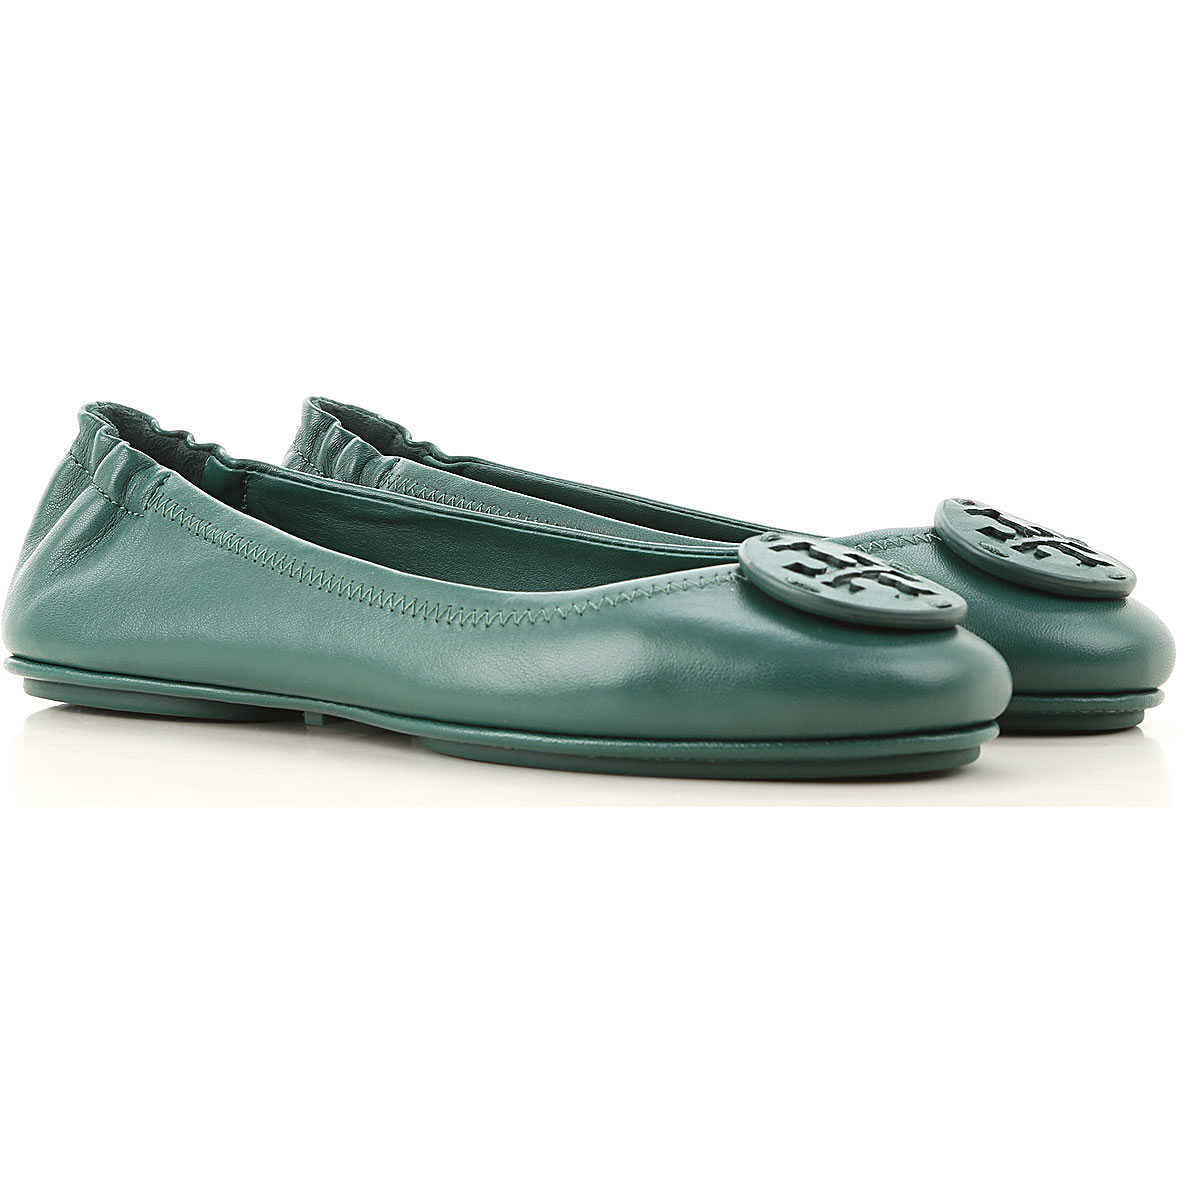 Tory Burch Ballet Flats Ballerina Shoes for Women Malachite Green - GOOFASH